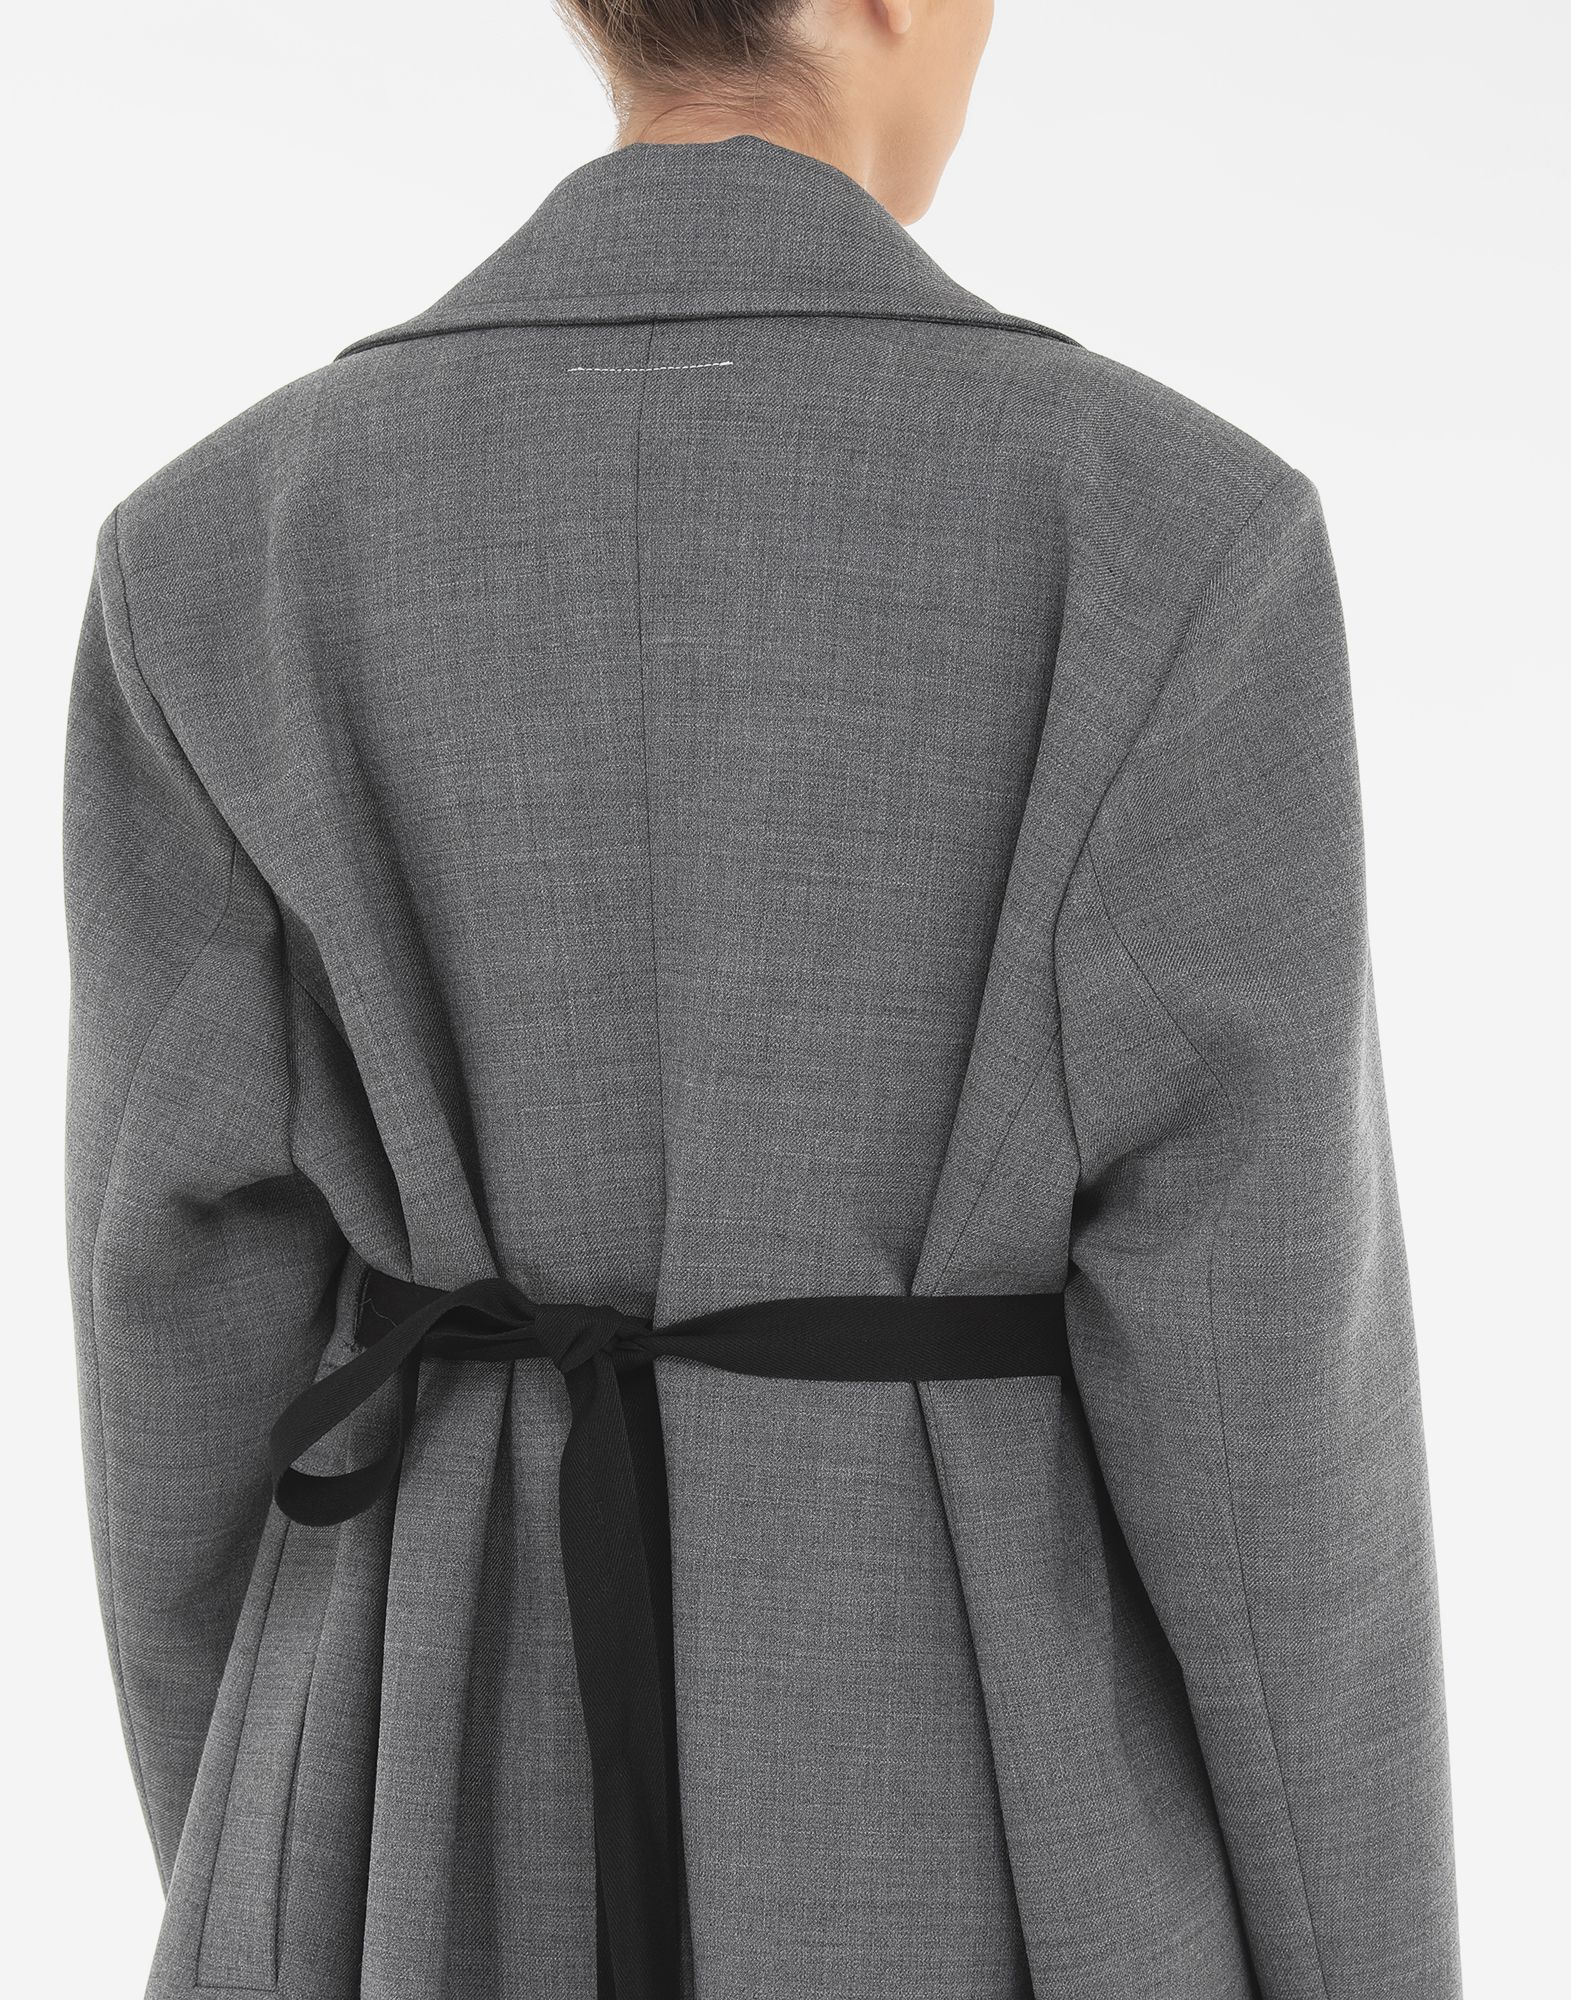 MM6 MAISON MARGIELA Techno-wool coat Coat Woman b